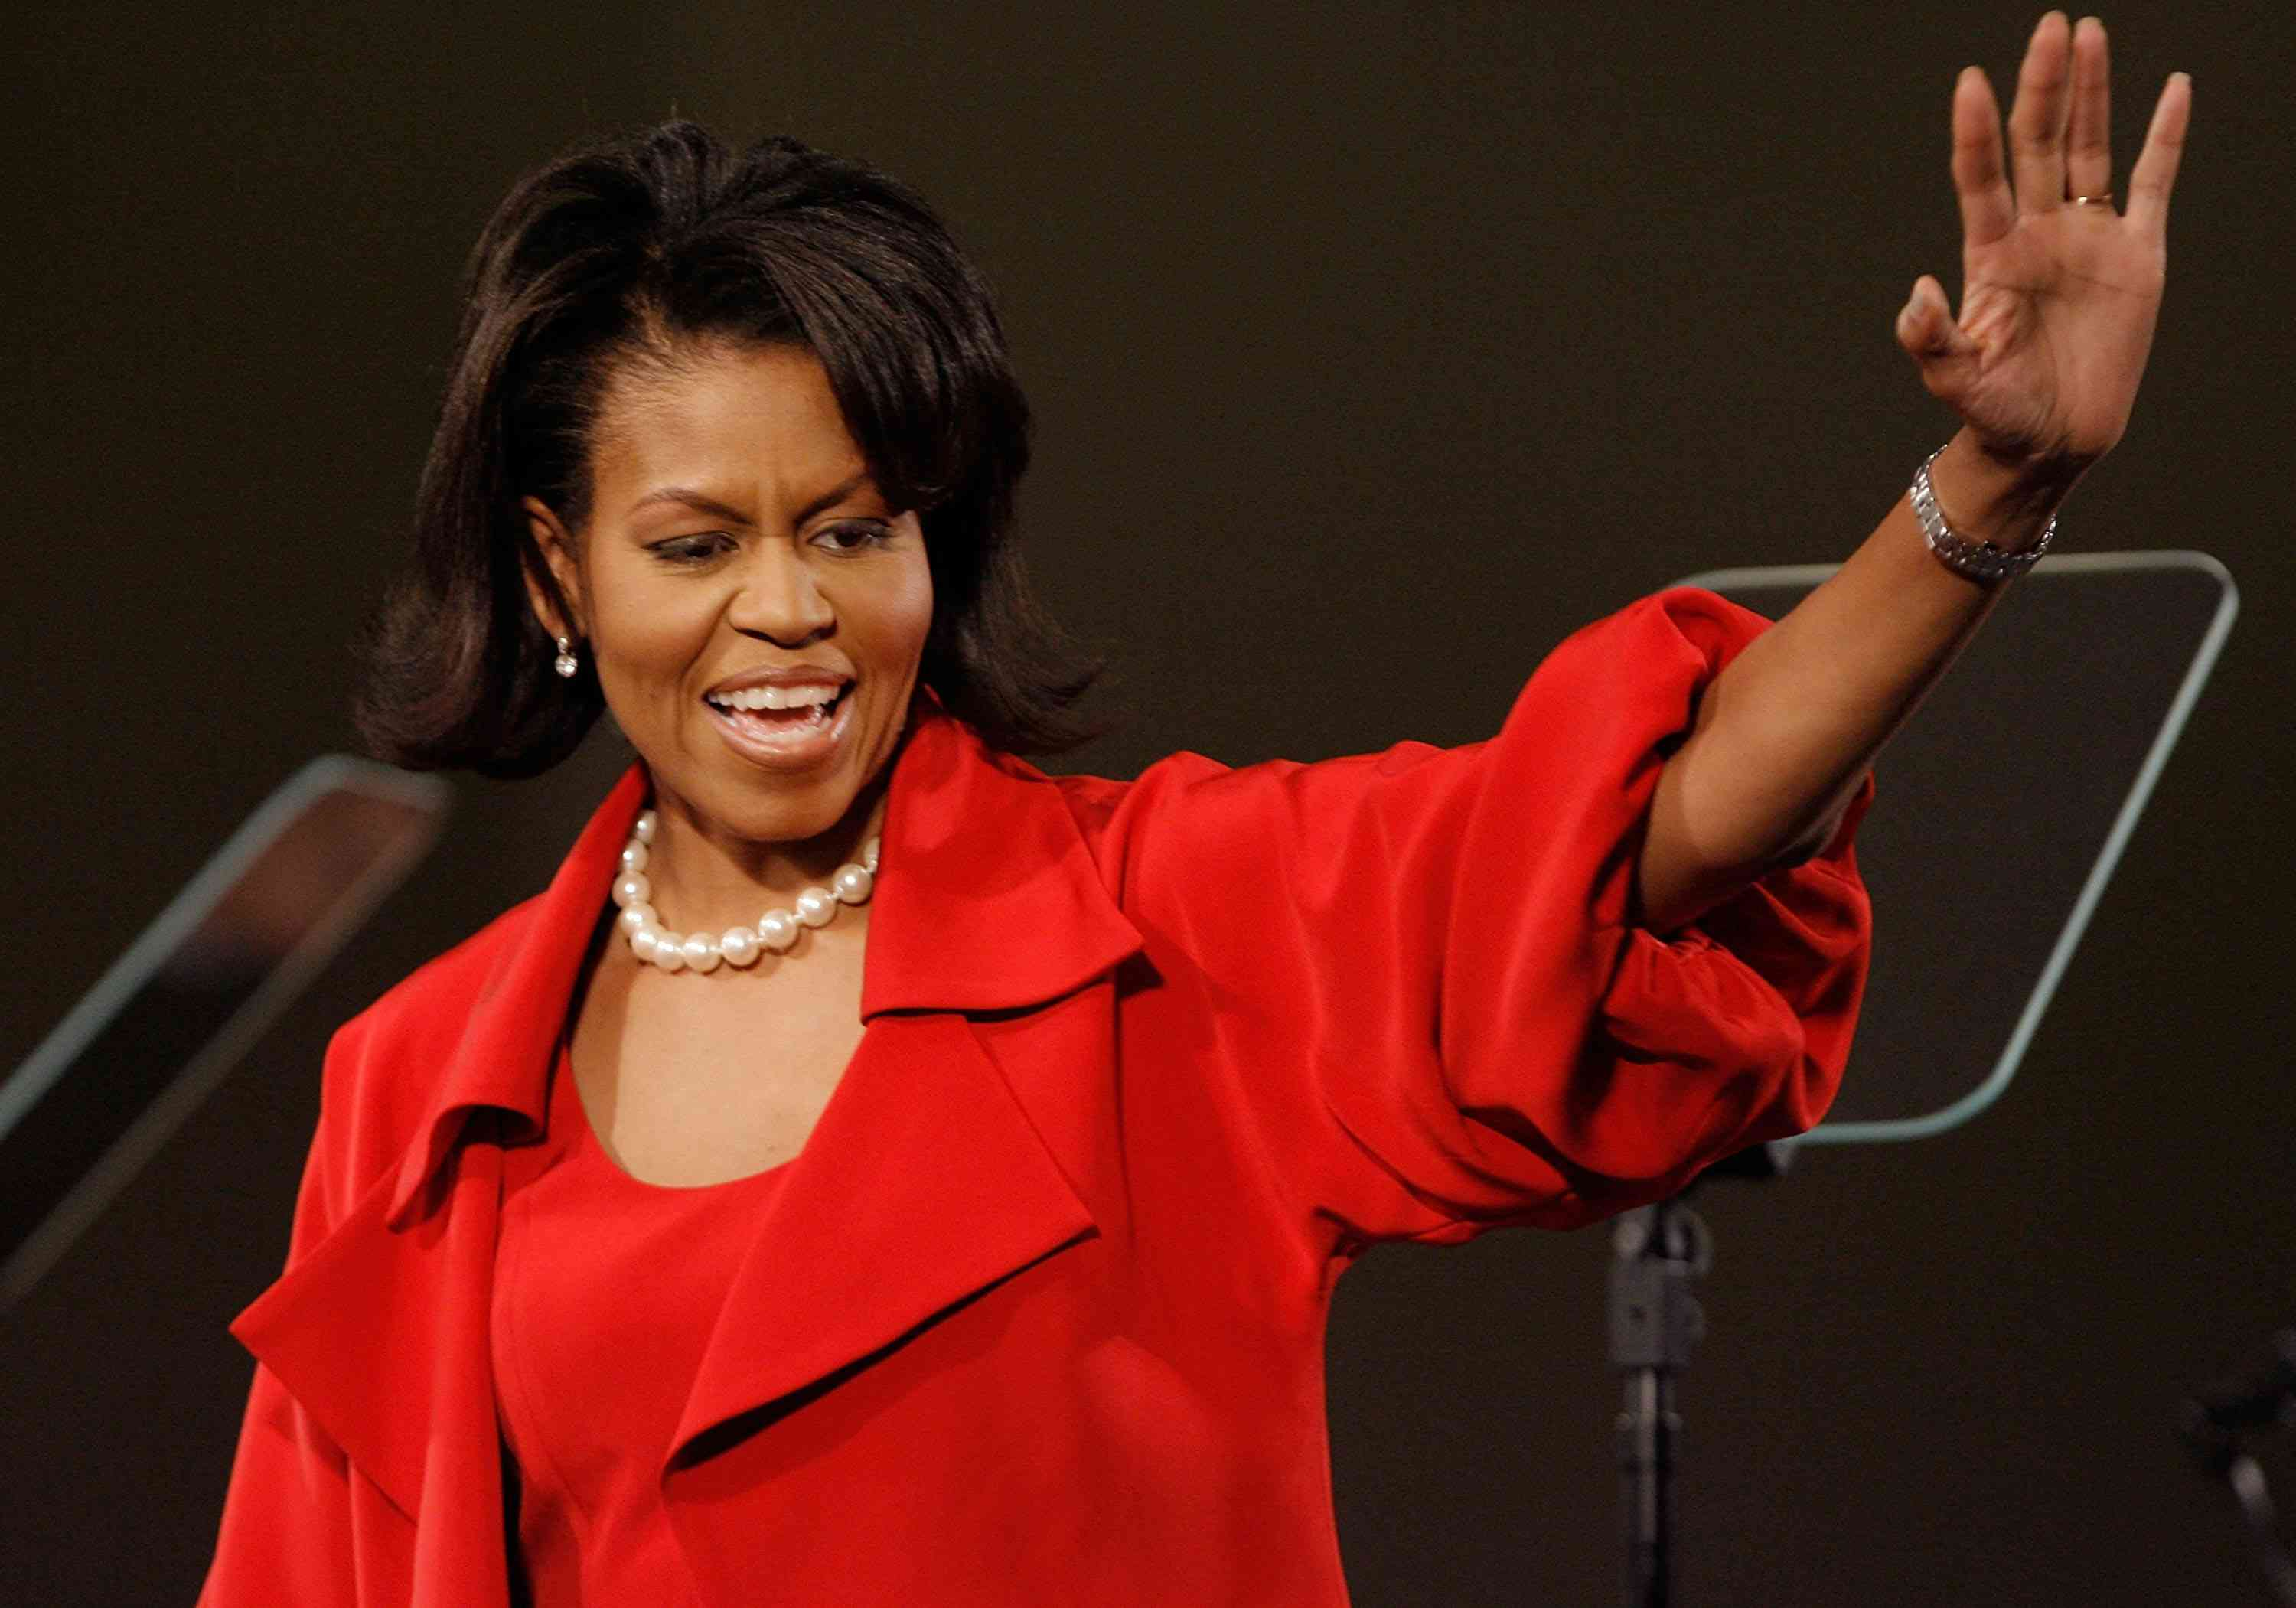 Michelle Obama greets supporters in Chicago.